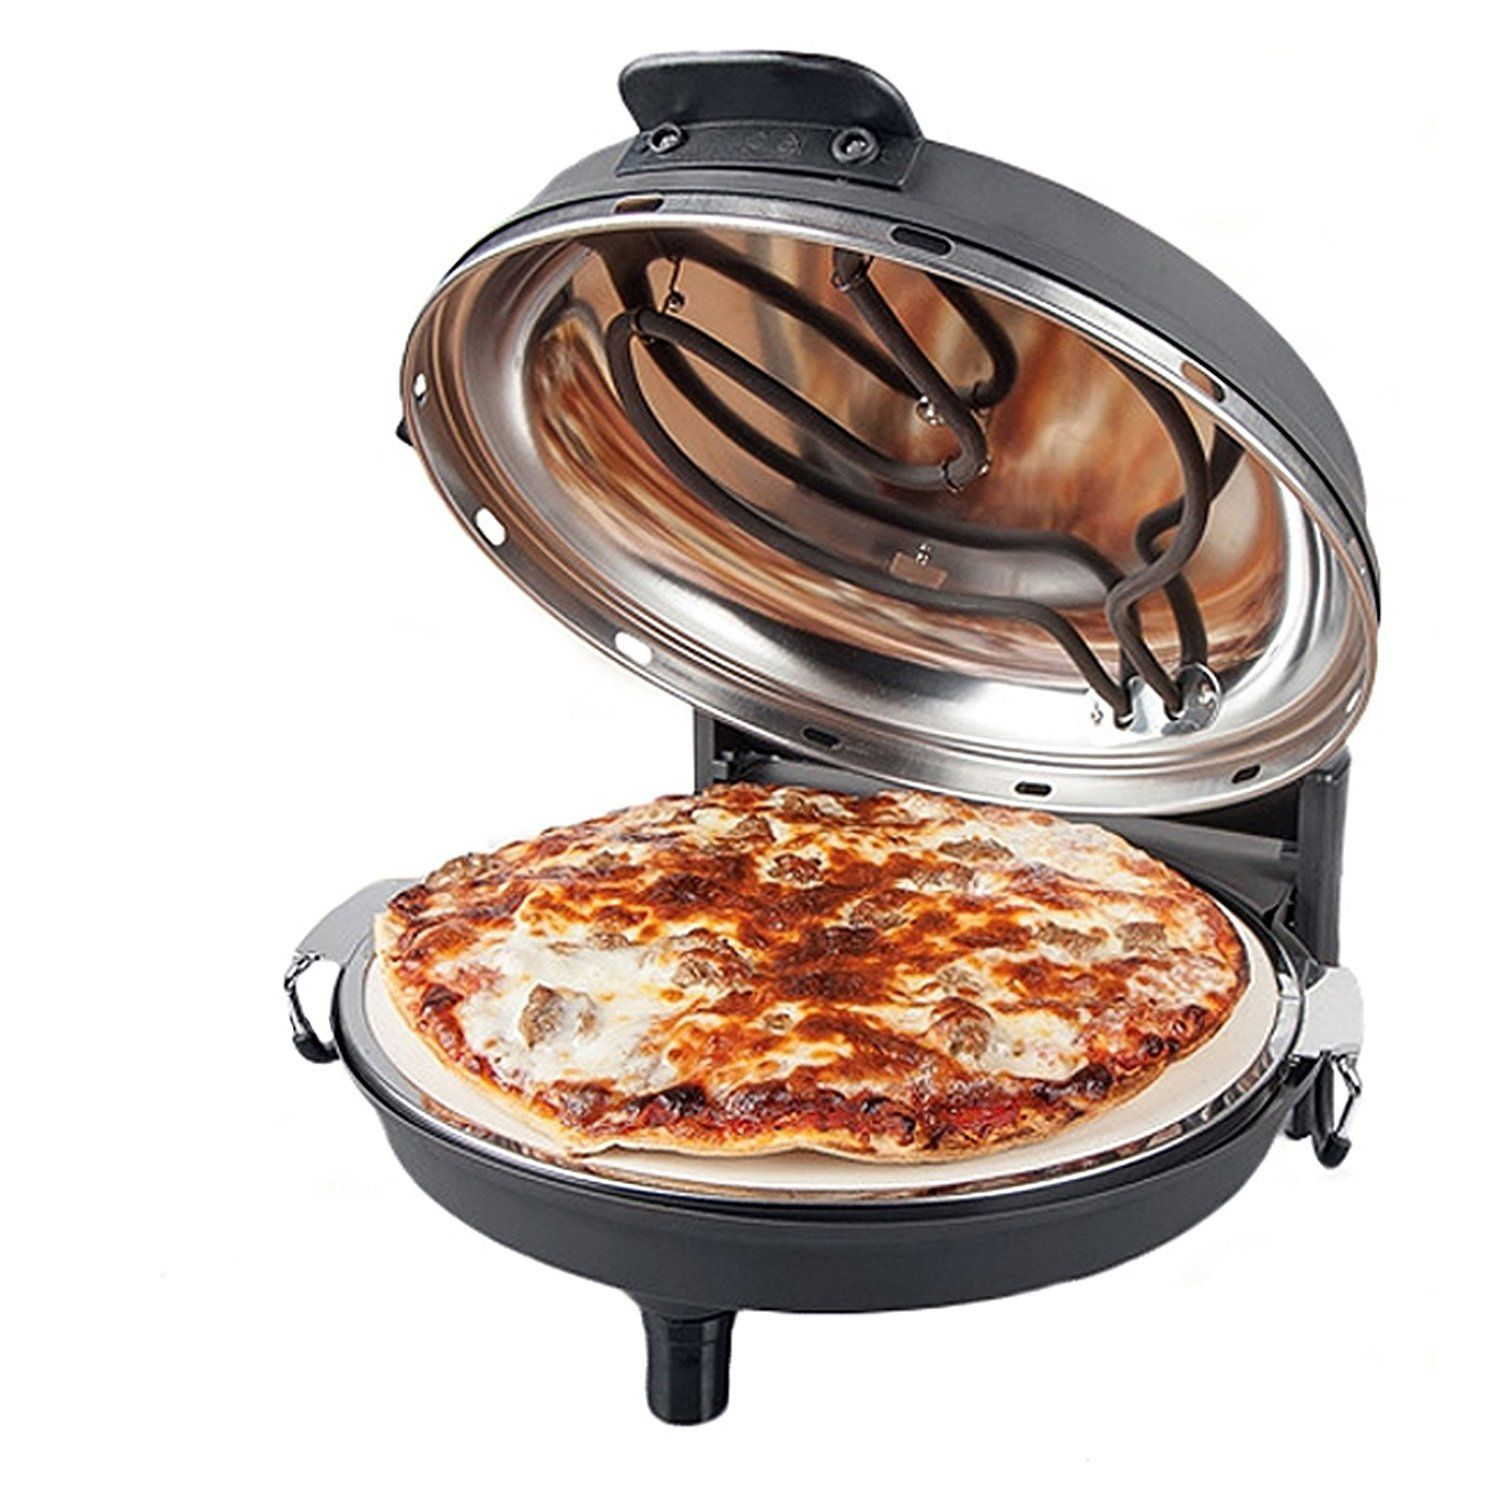 Uncategorized Pizza Makers Specialty Kitchen Appliances pizza maker cooker oven for sale uk uk